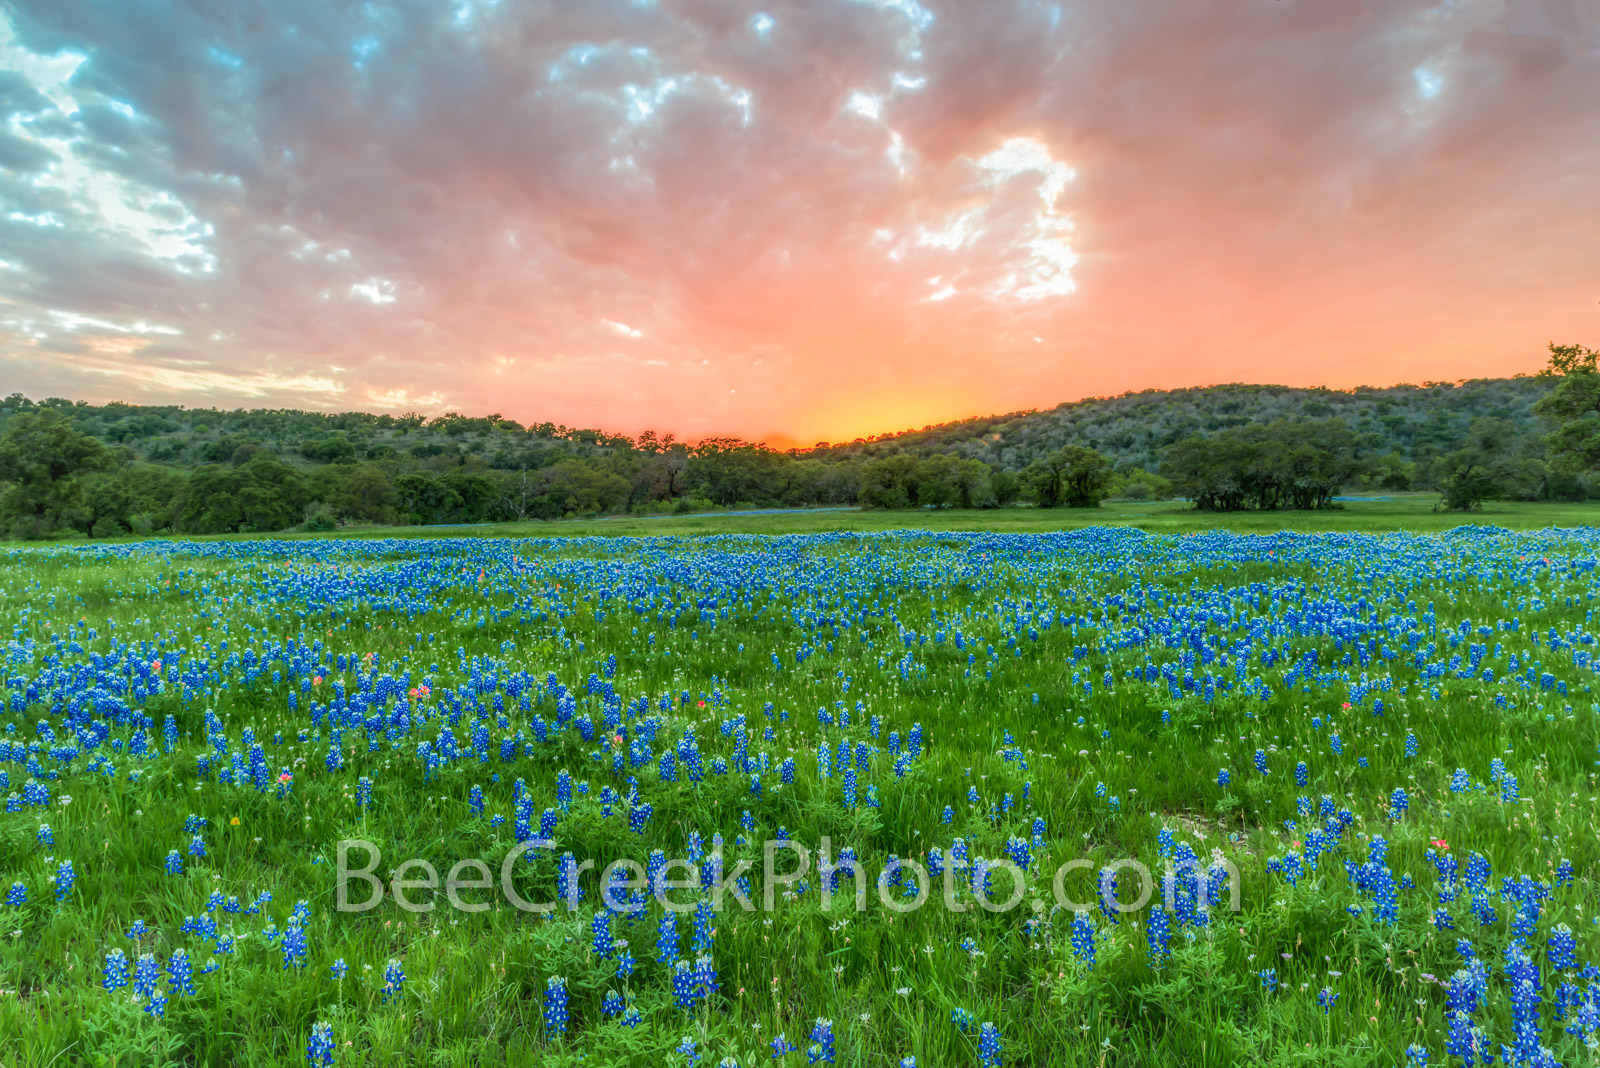 bluebonnets, sunsets, field, field of bluebonnets, blue bonnets, fiery sky, colorful, red, yellows, orange, purple, landscape, landscapes, Texas Hill Country, vivid, fiery, stunning,spring flowers, sp, photo